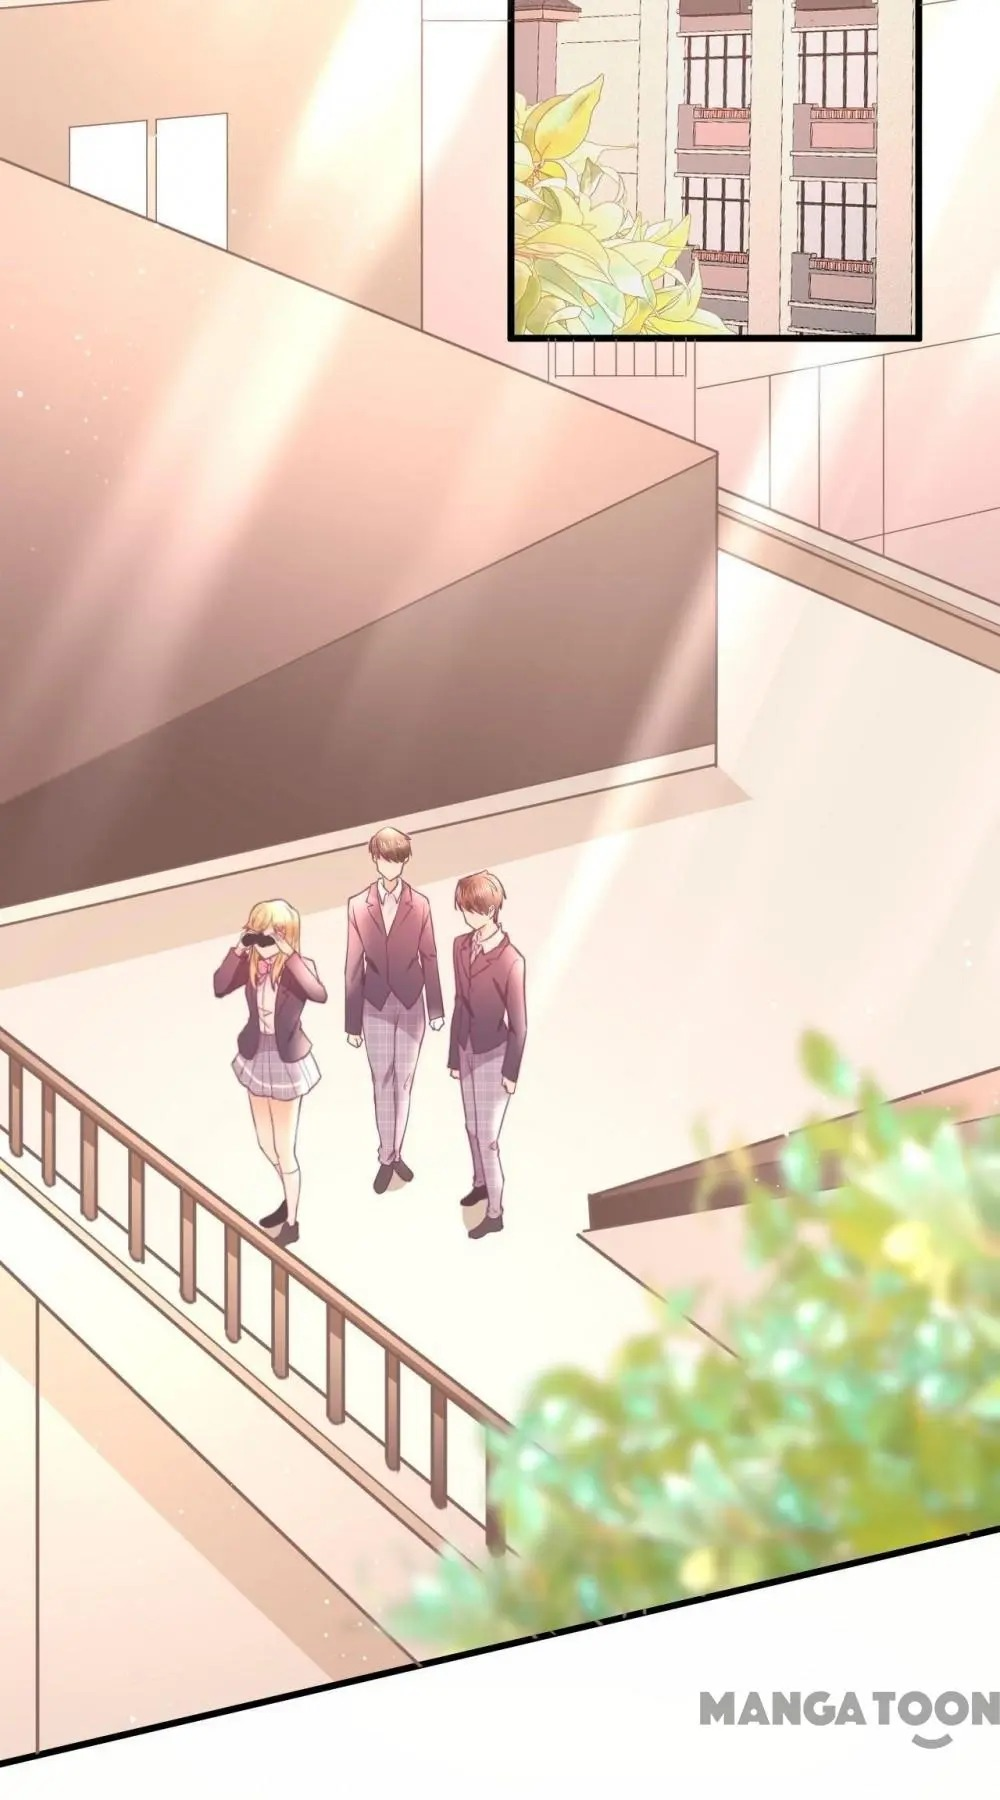 They All Want To Marry Me! Help! - chapter 47 - #2